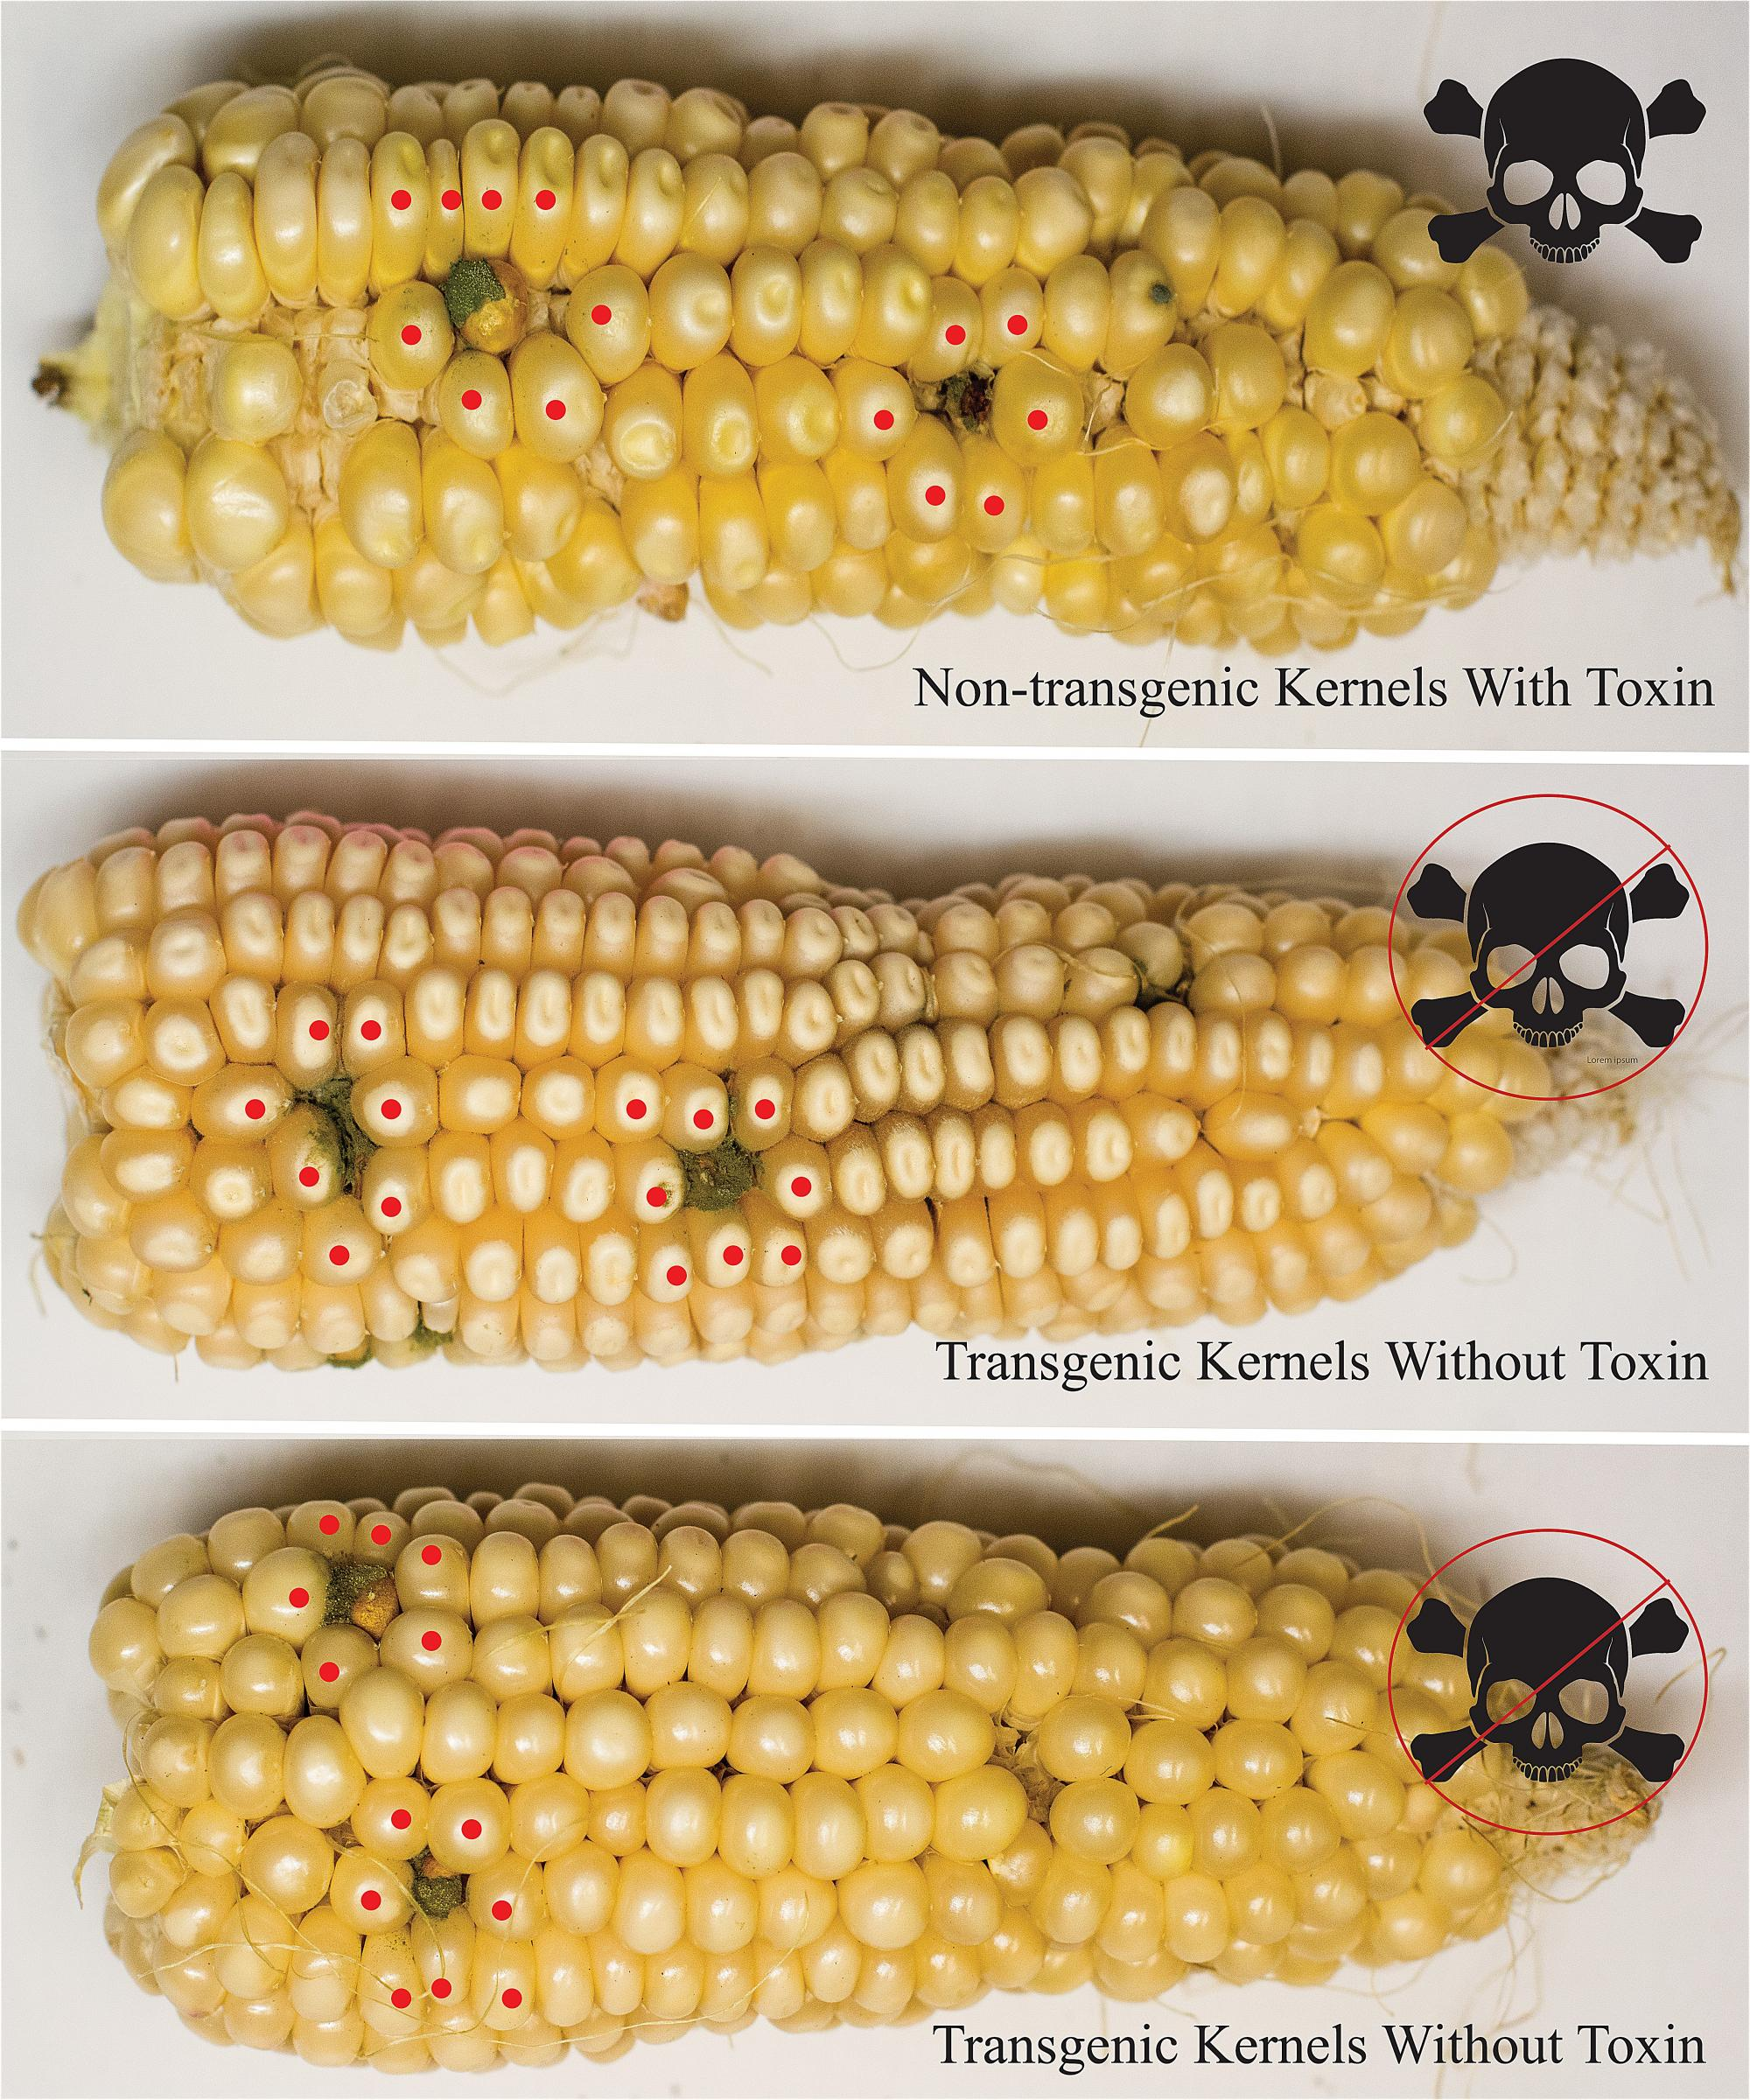 These corn cobs show the sites where they were infected with Aspergillus fungus. Although non-transgenic and transgenic kernels showed evidence of equal infection, the transgenics accumulated no toxin. Red dots mark the kernels harvested by the researcher